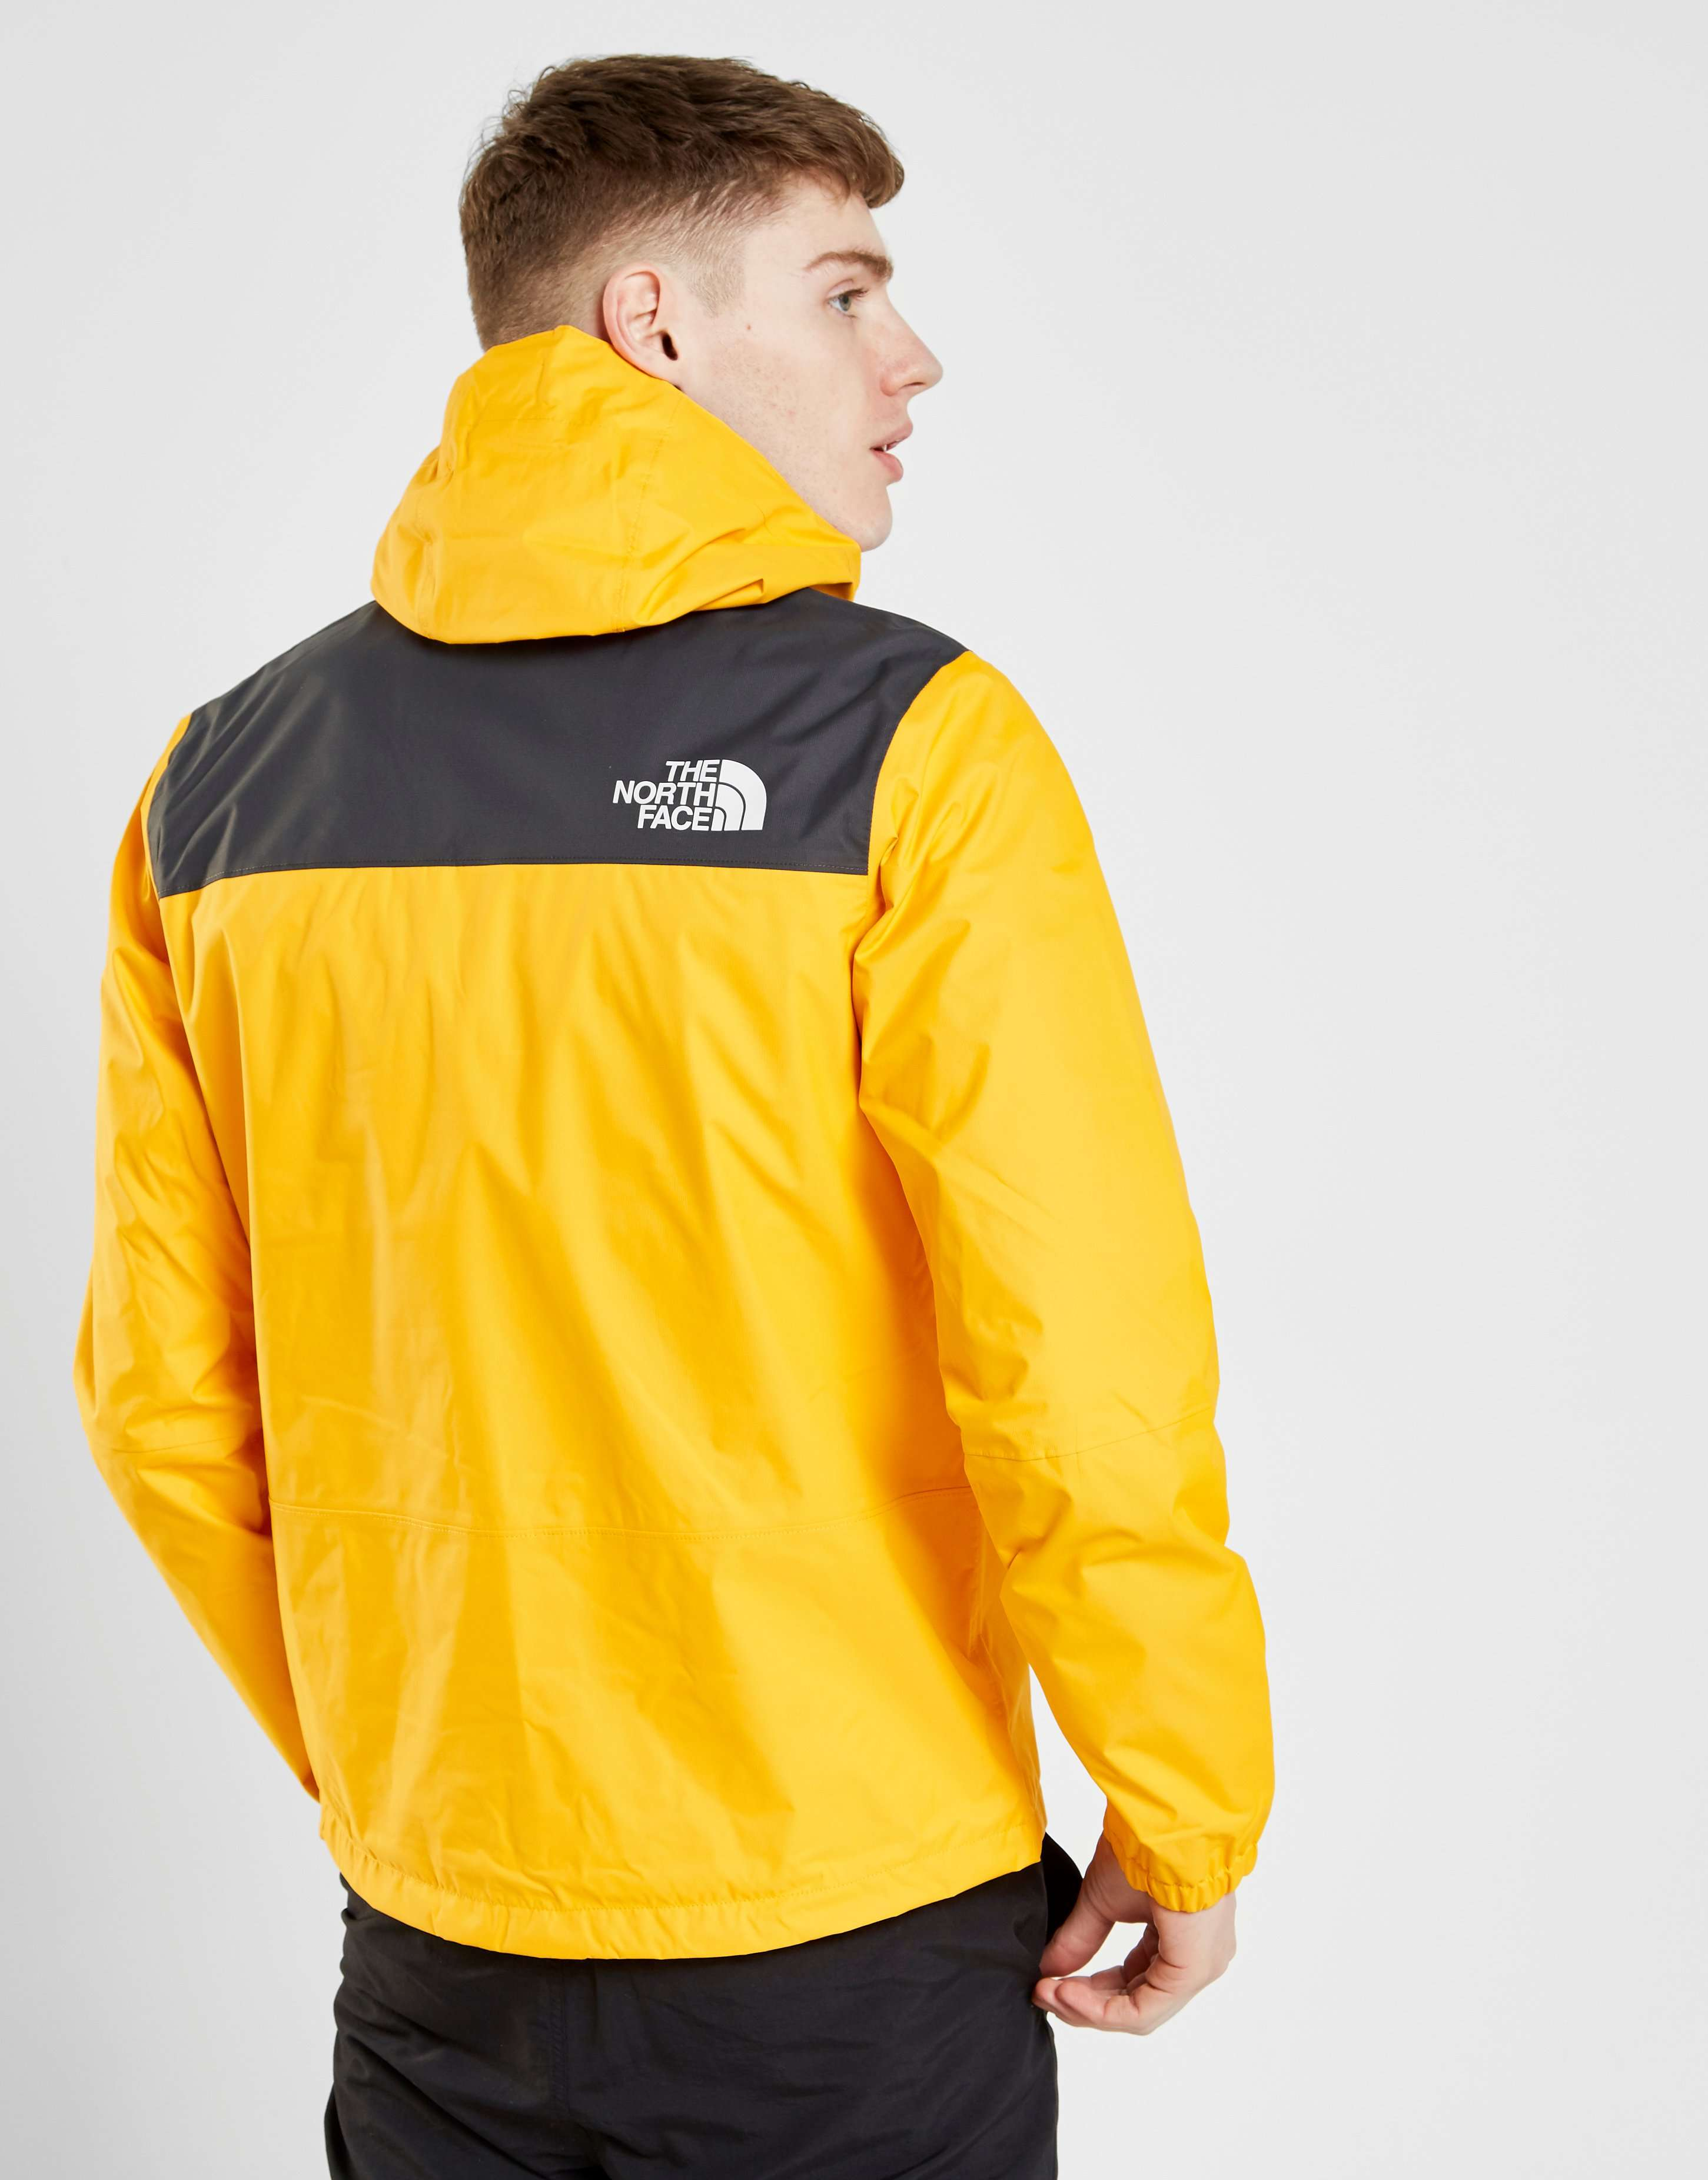 The North Face 1991 Mountain Jacket